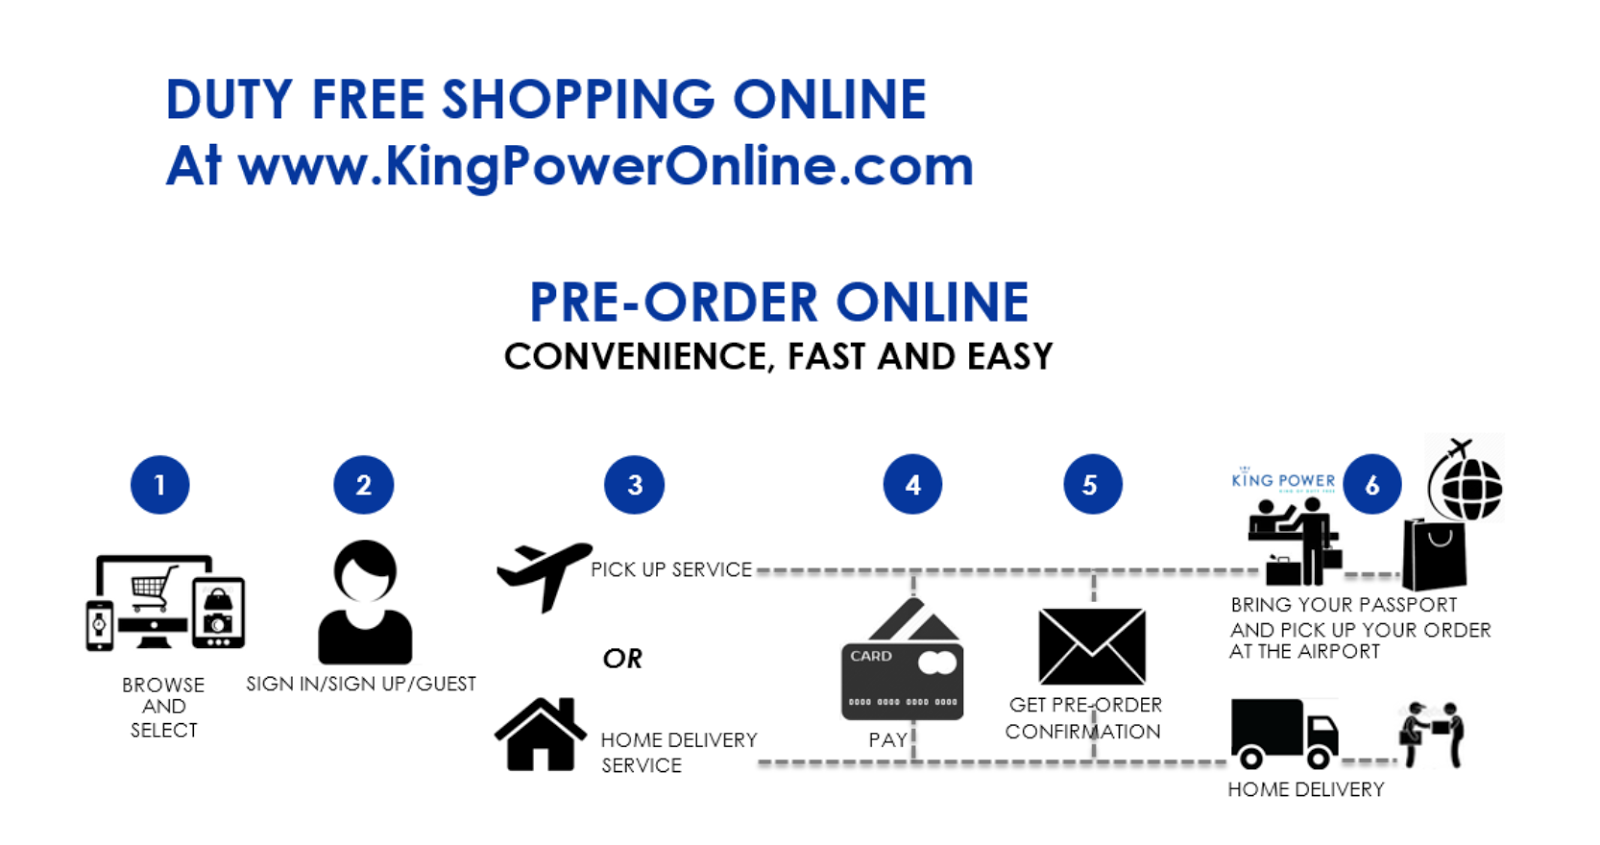 Kingpower Duty Free Thailand